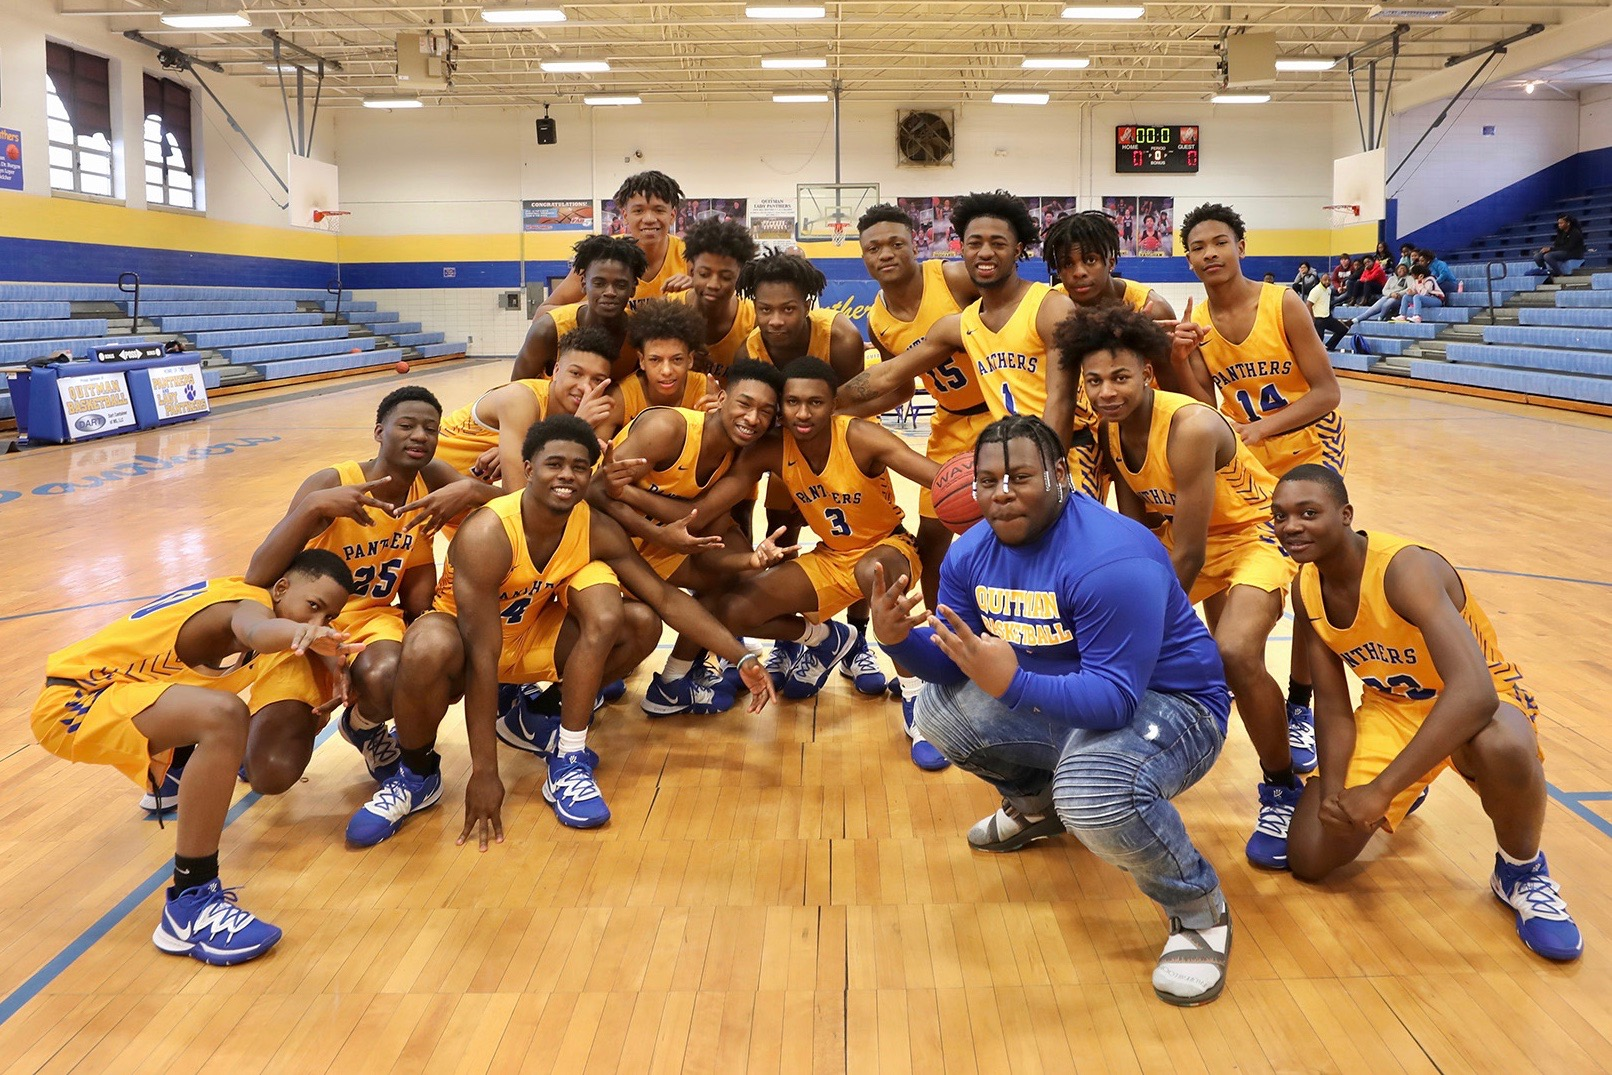 Panther Basketball poses for a photo.